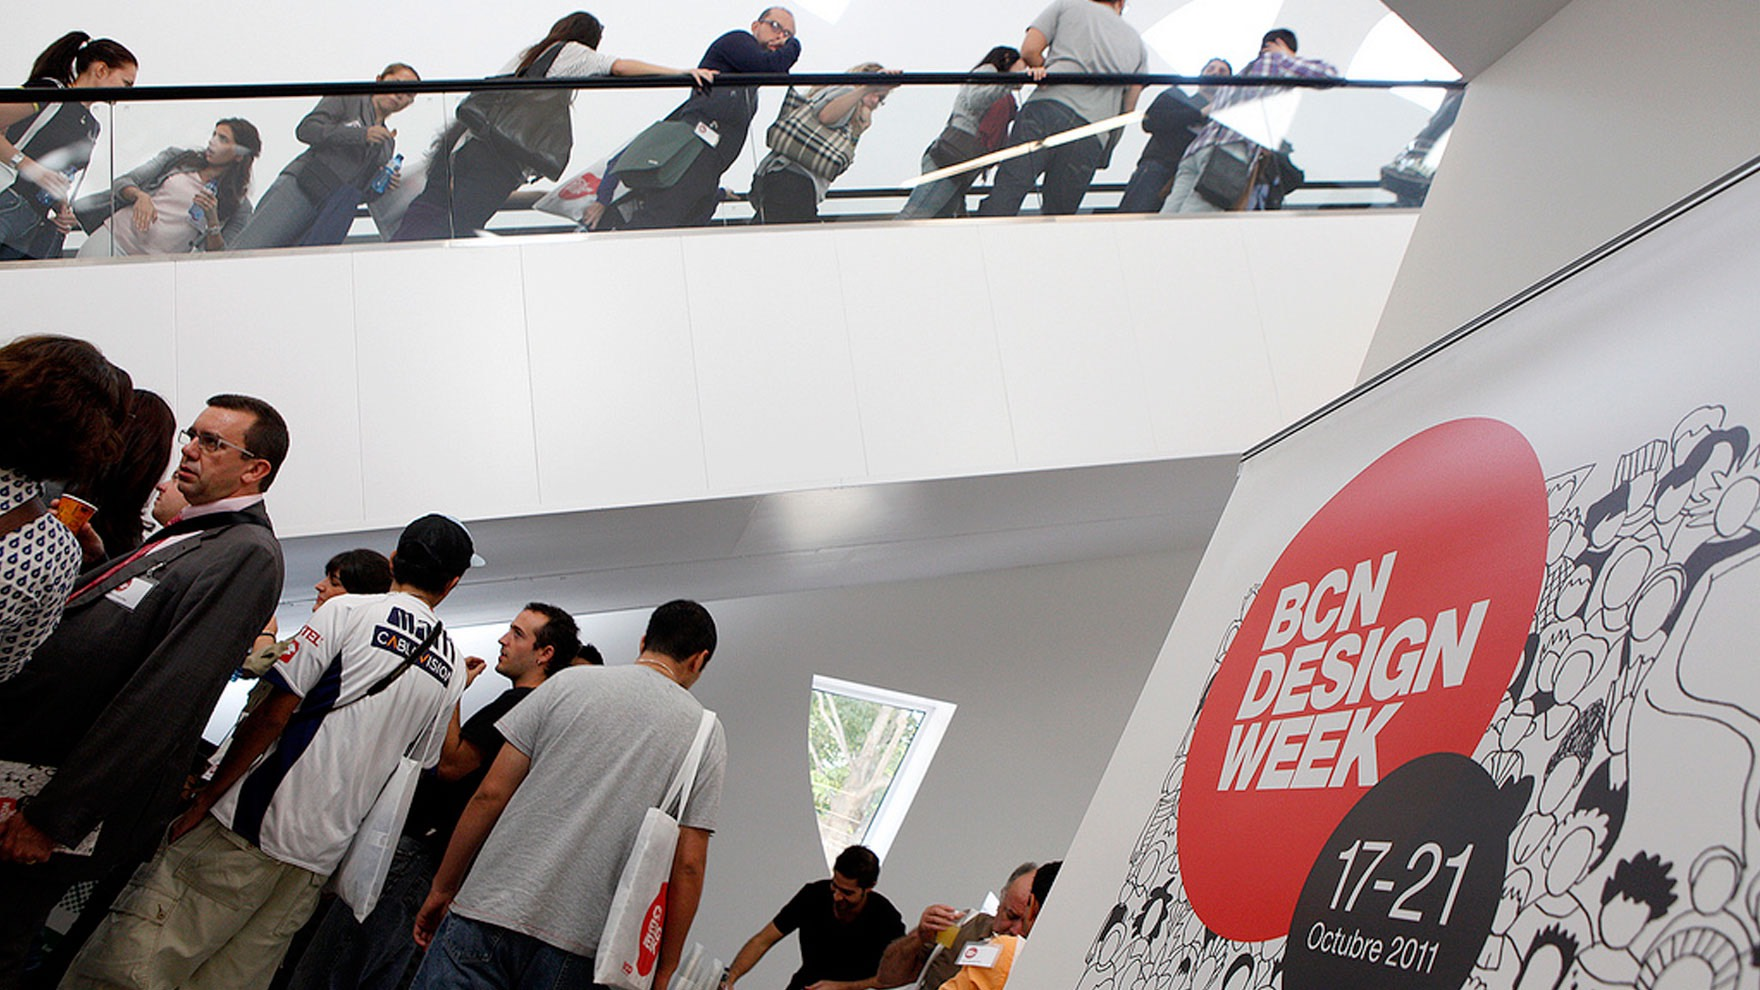 BARCELONA DESIGN WEEK / IDENTIDAD CORPORATIVA / BRANDING